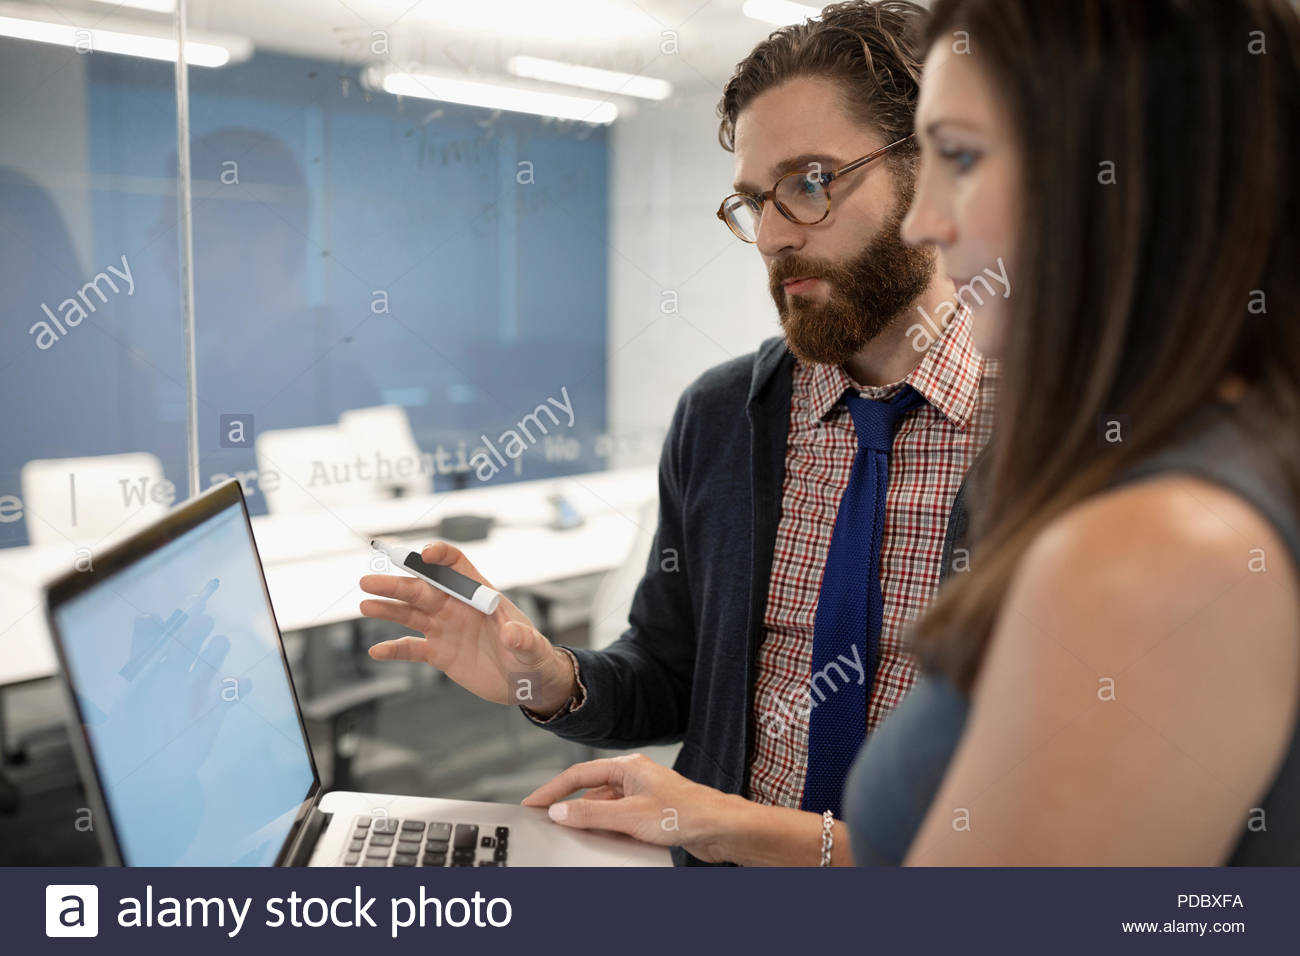 Business people with laptop planning, brainstorming in office - Stock Image